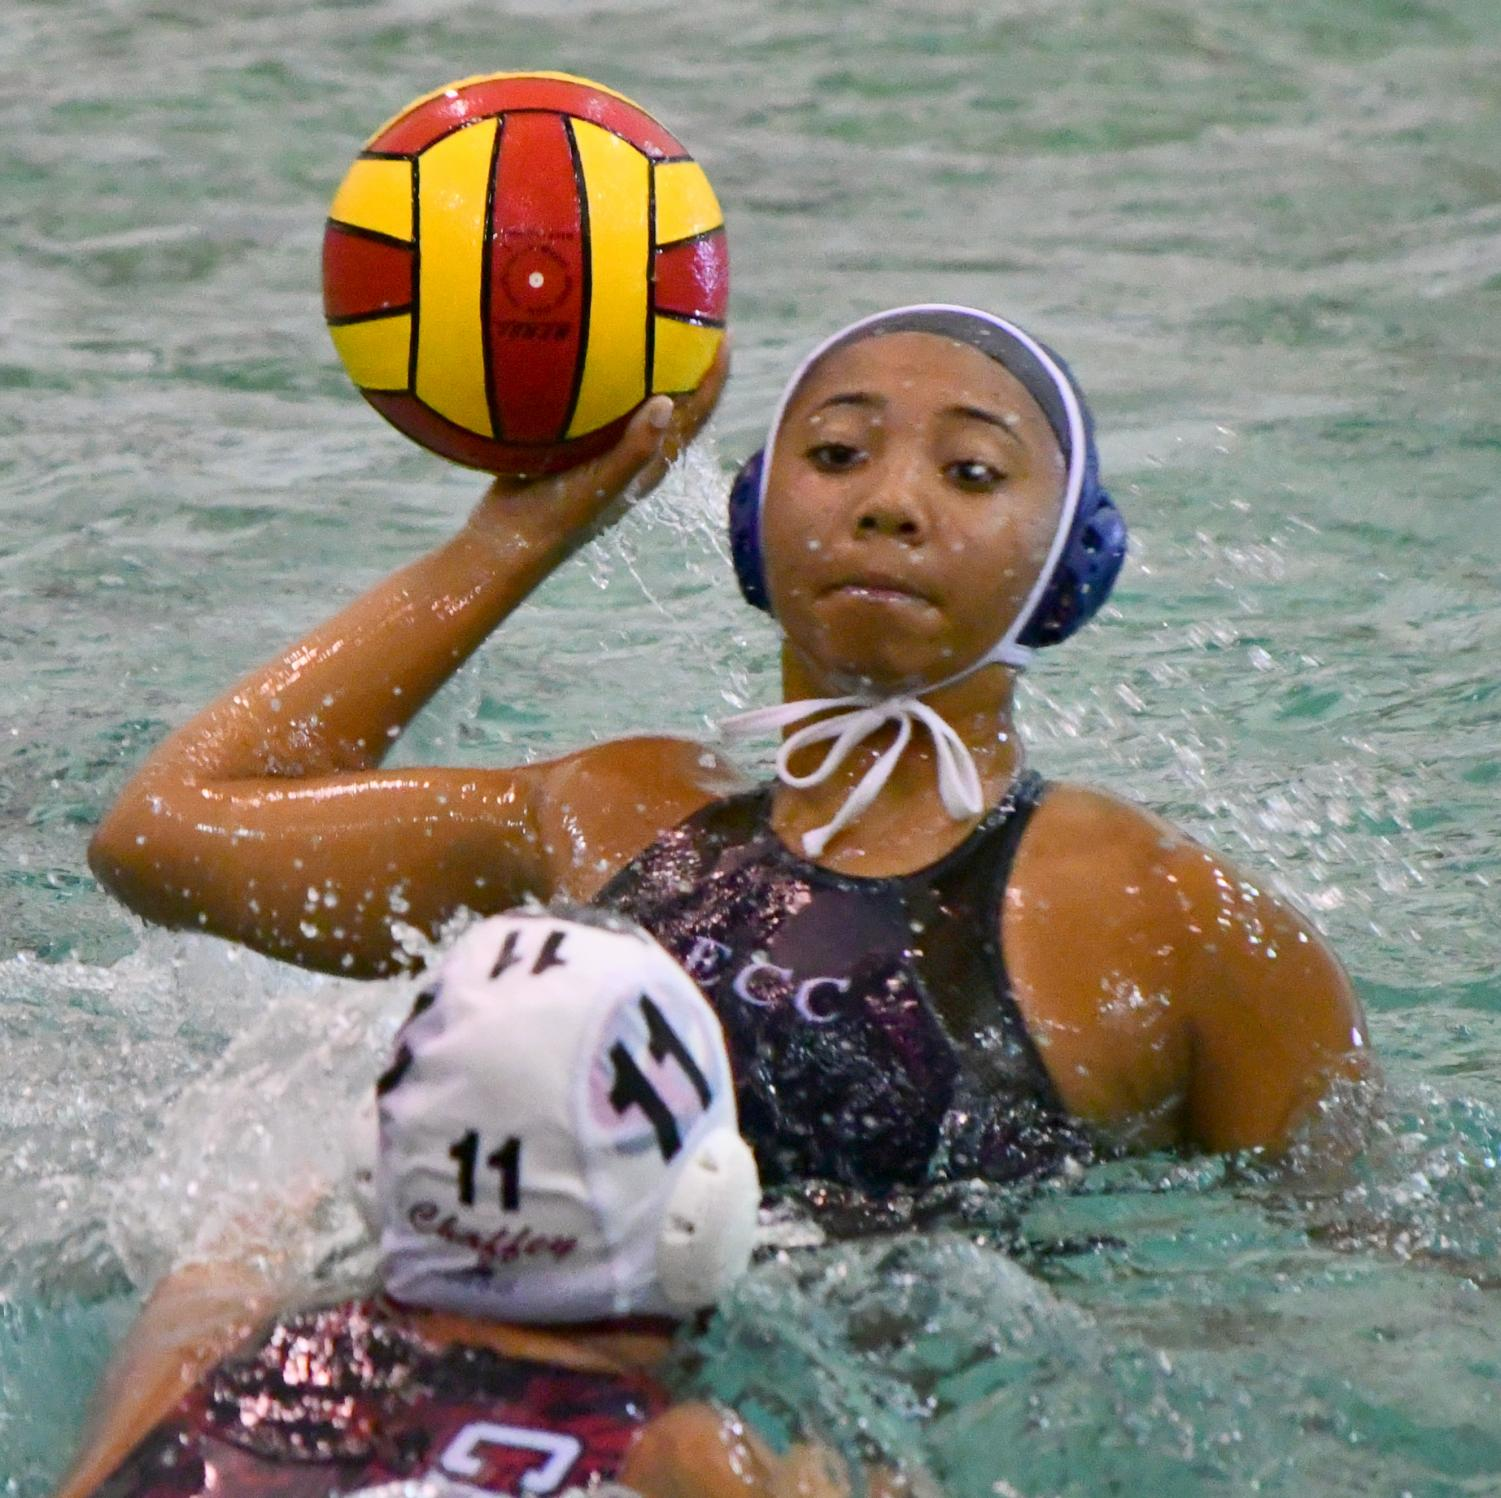 Sonni Garcia sets up to take a shot during the ECC vs Chaffey College water polo match at the ECC swimming pool on Monday, Oct. 8. Garcia scored 3 goals, but ECC lost the match 17-4. Photo credit: Jack Kan